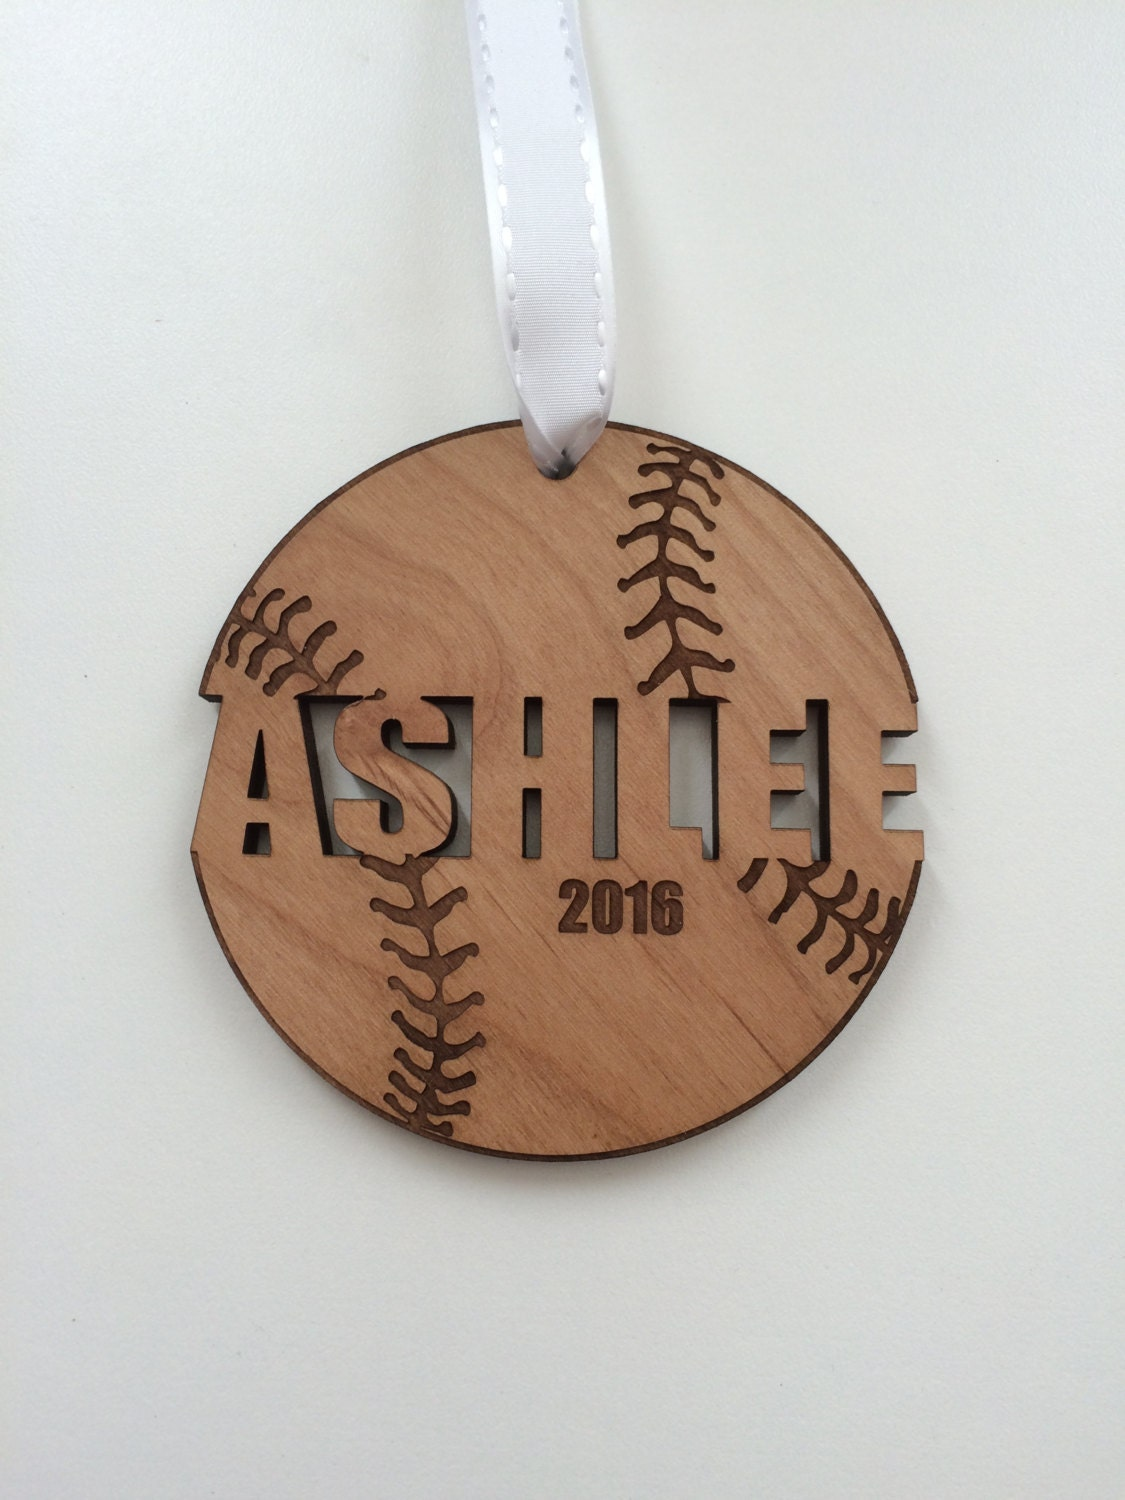 Blank ornaments to personalize - Softball Ornaments Softball Gifts Softball Coach Gift Softball Mom Team Gifts Engraved Ornament Personalized Custom Christmas